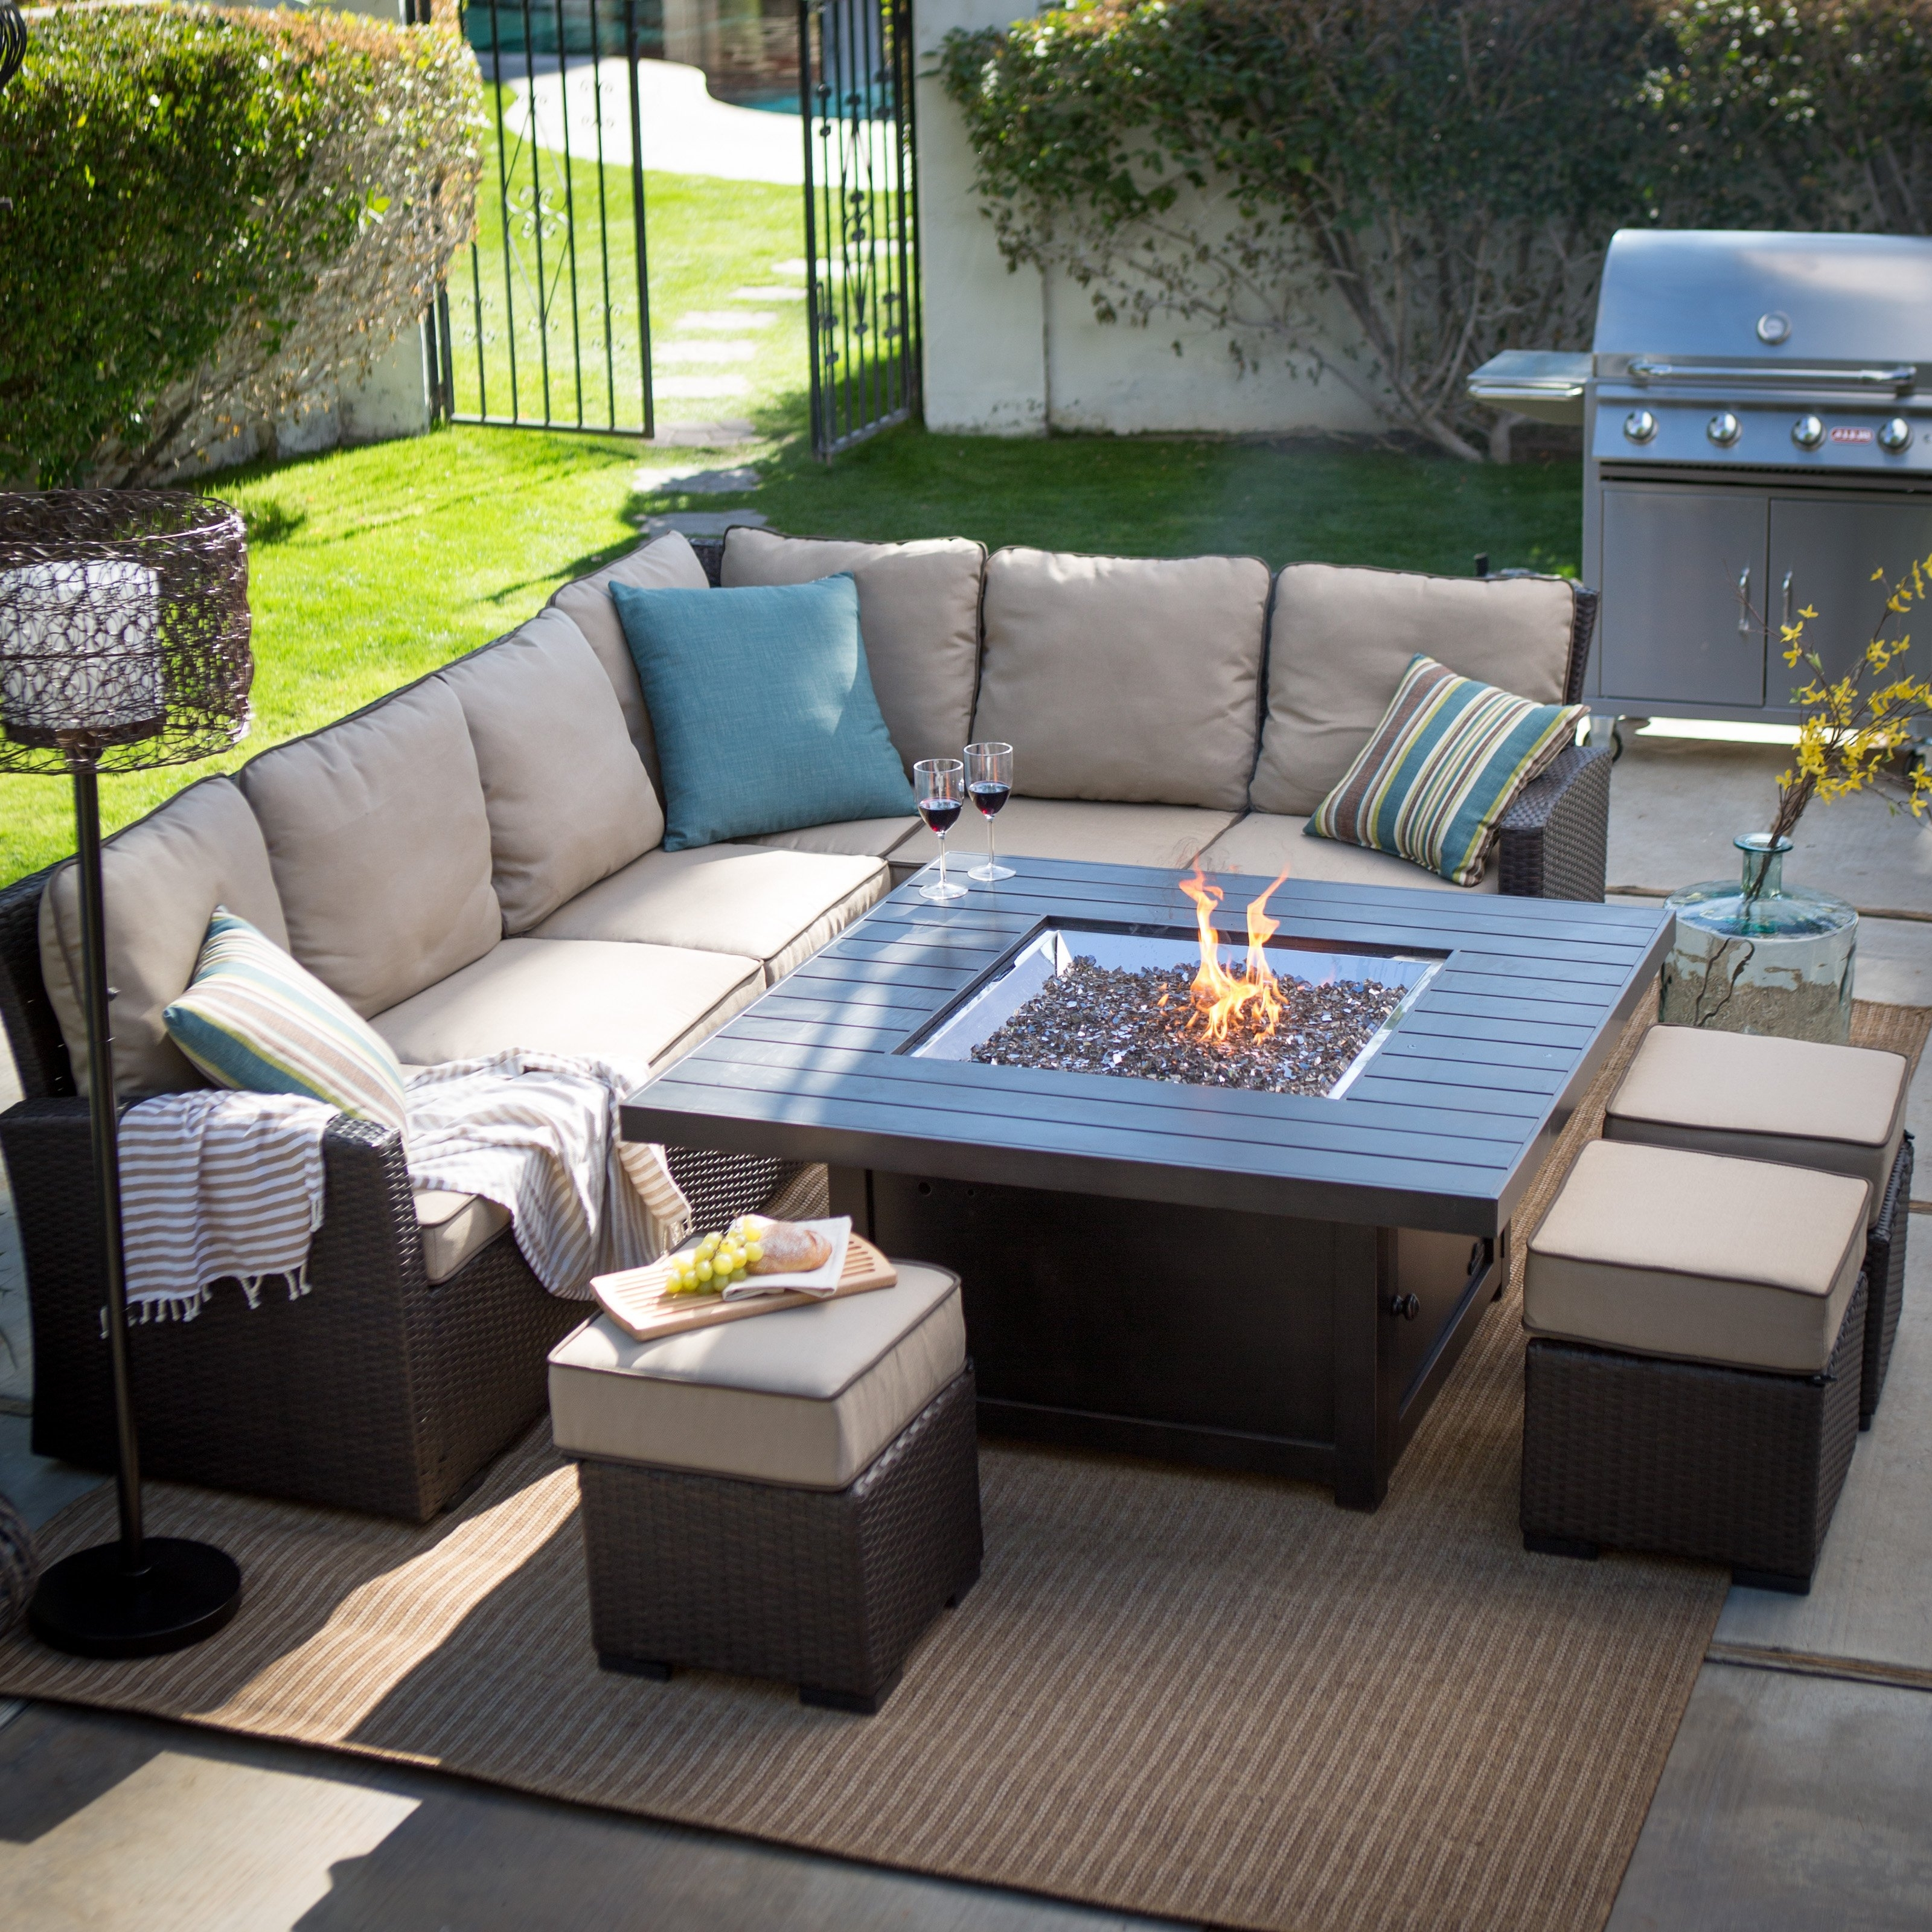 Dining Table With Fire Pit In Middle Verona Height Propane Patio For Recent Patio Conversation Dining Sets (View 16 of 20)